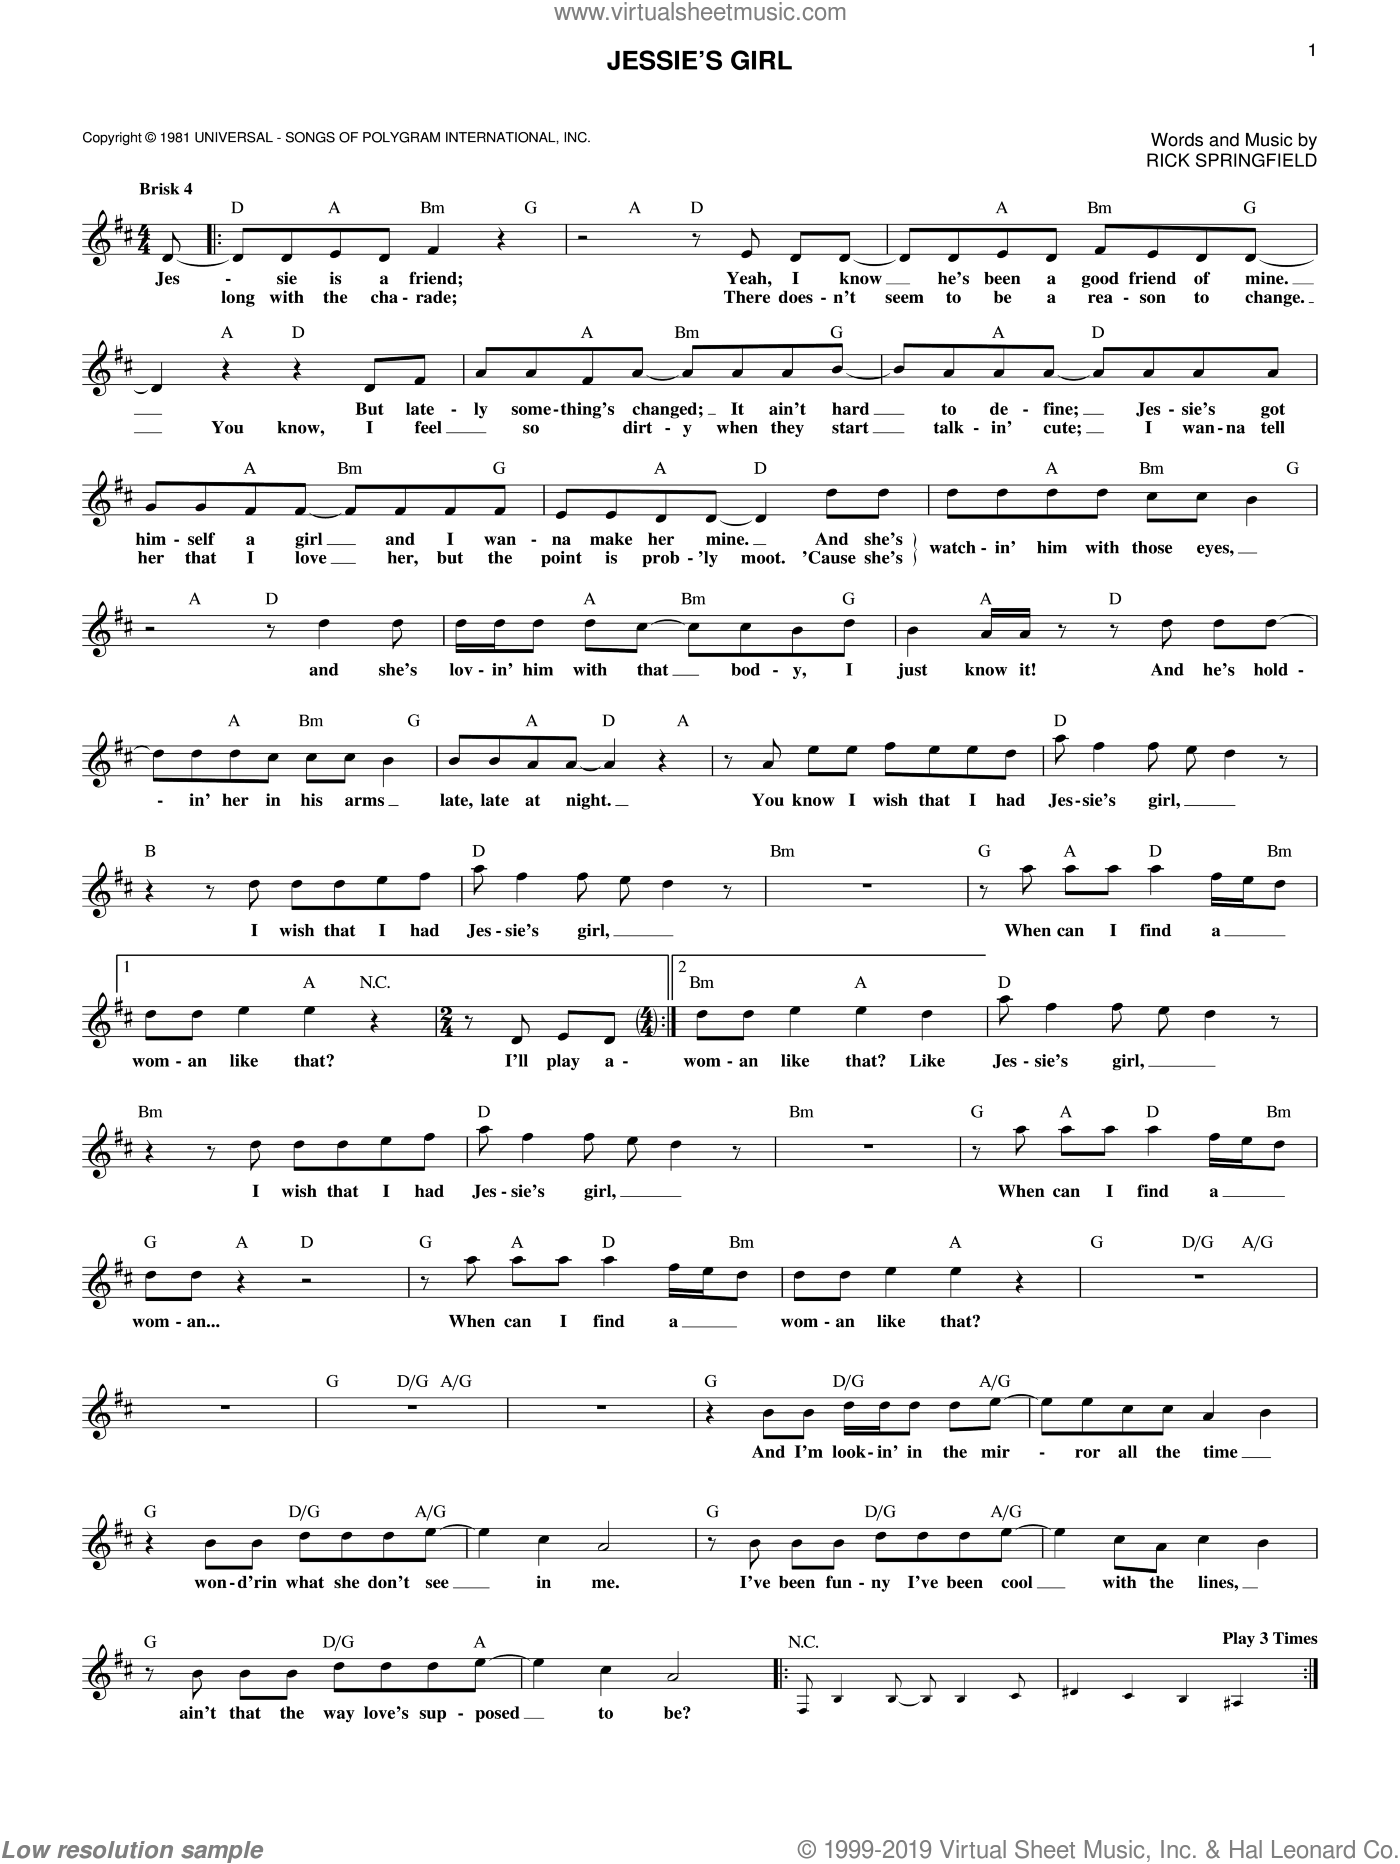 Jessie's Girl sheet music for voice and other instruments (fake book) by Rick Springfield, intermediate skill level